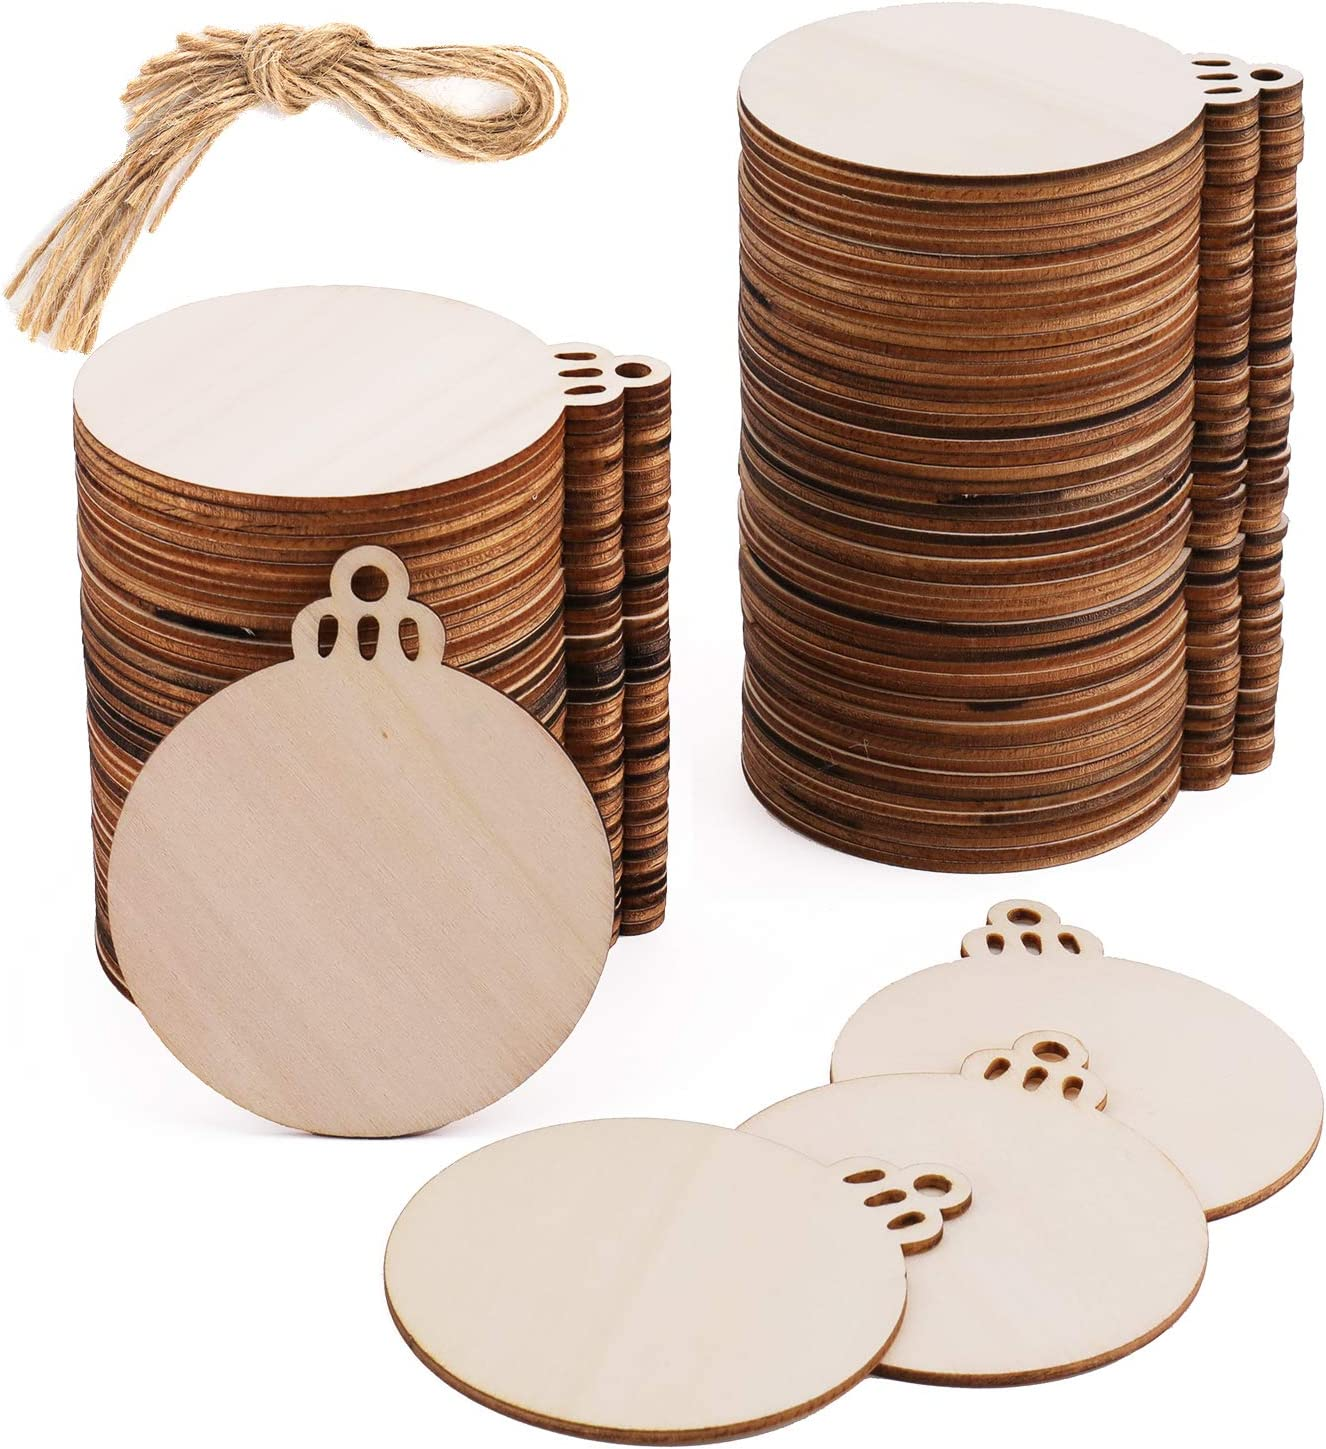 Kingrol 100 Pack Natural Wood Slices, 3 Inch Round Wooden Discs with Holes for Crafts Supplies DIY Christmas Ornaments Wedding Hanging Decor